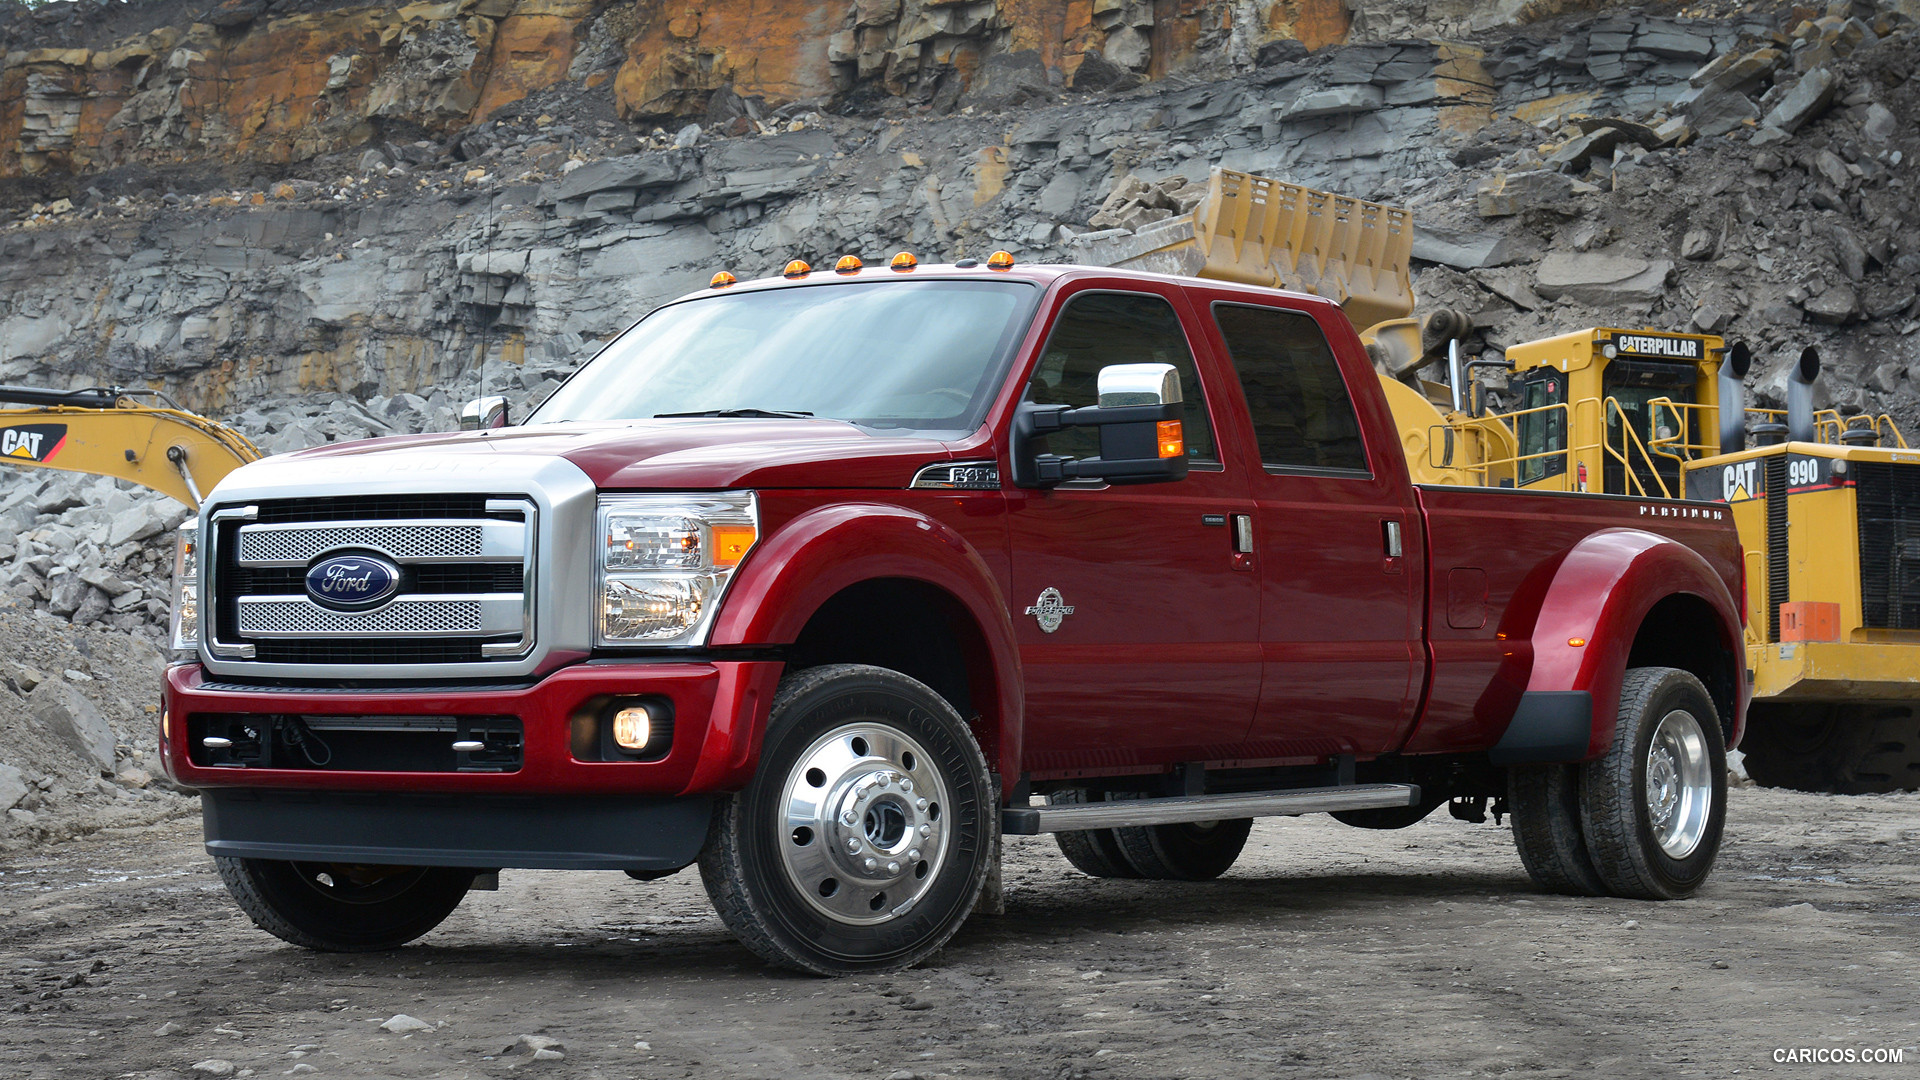 ford f series super duty photos photo gallery page 5. Black Bedroom Furniture Sets. Home Design Ideas